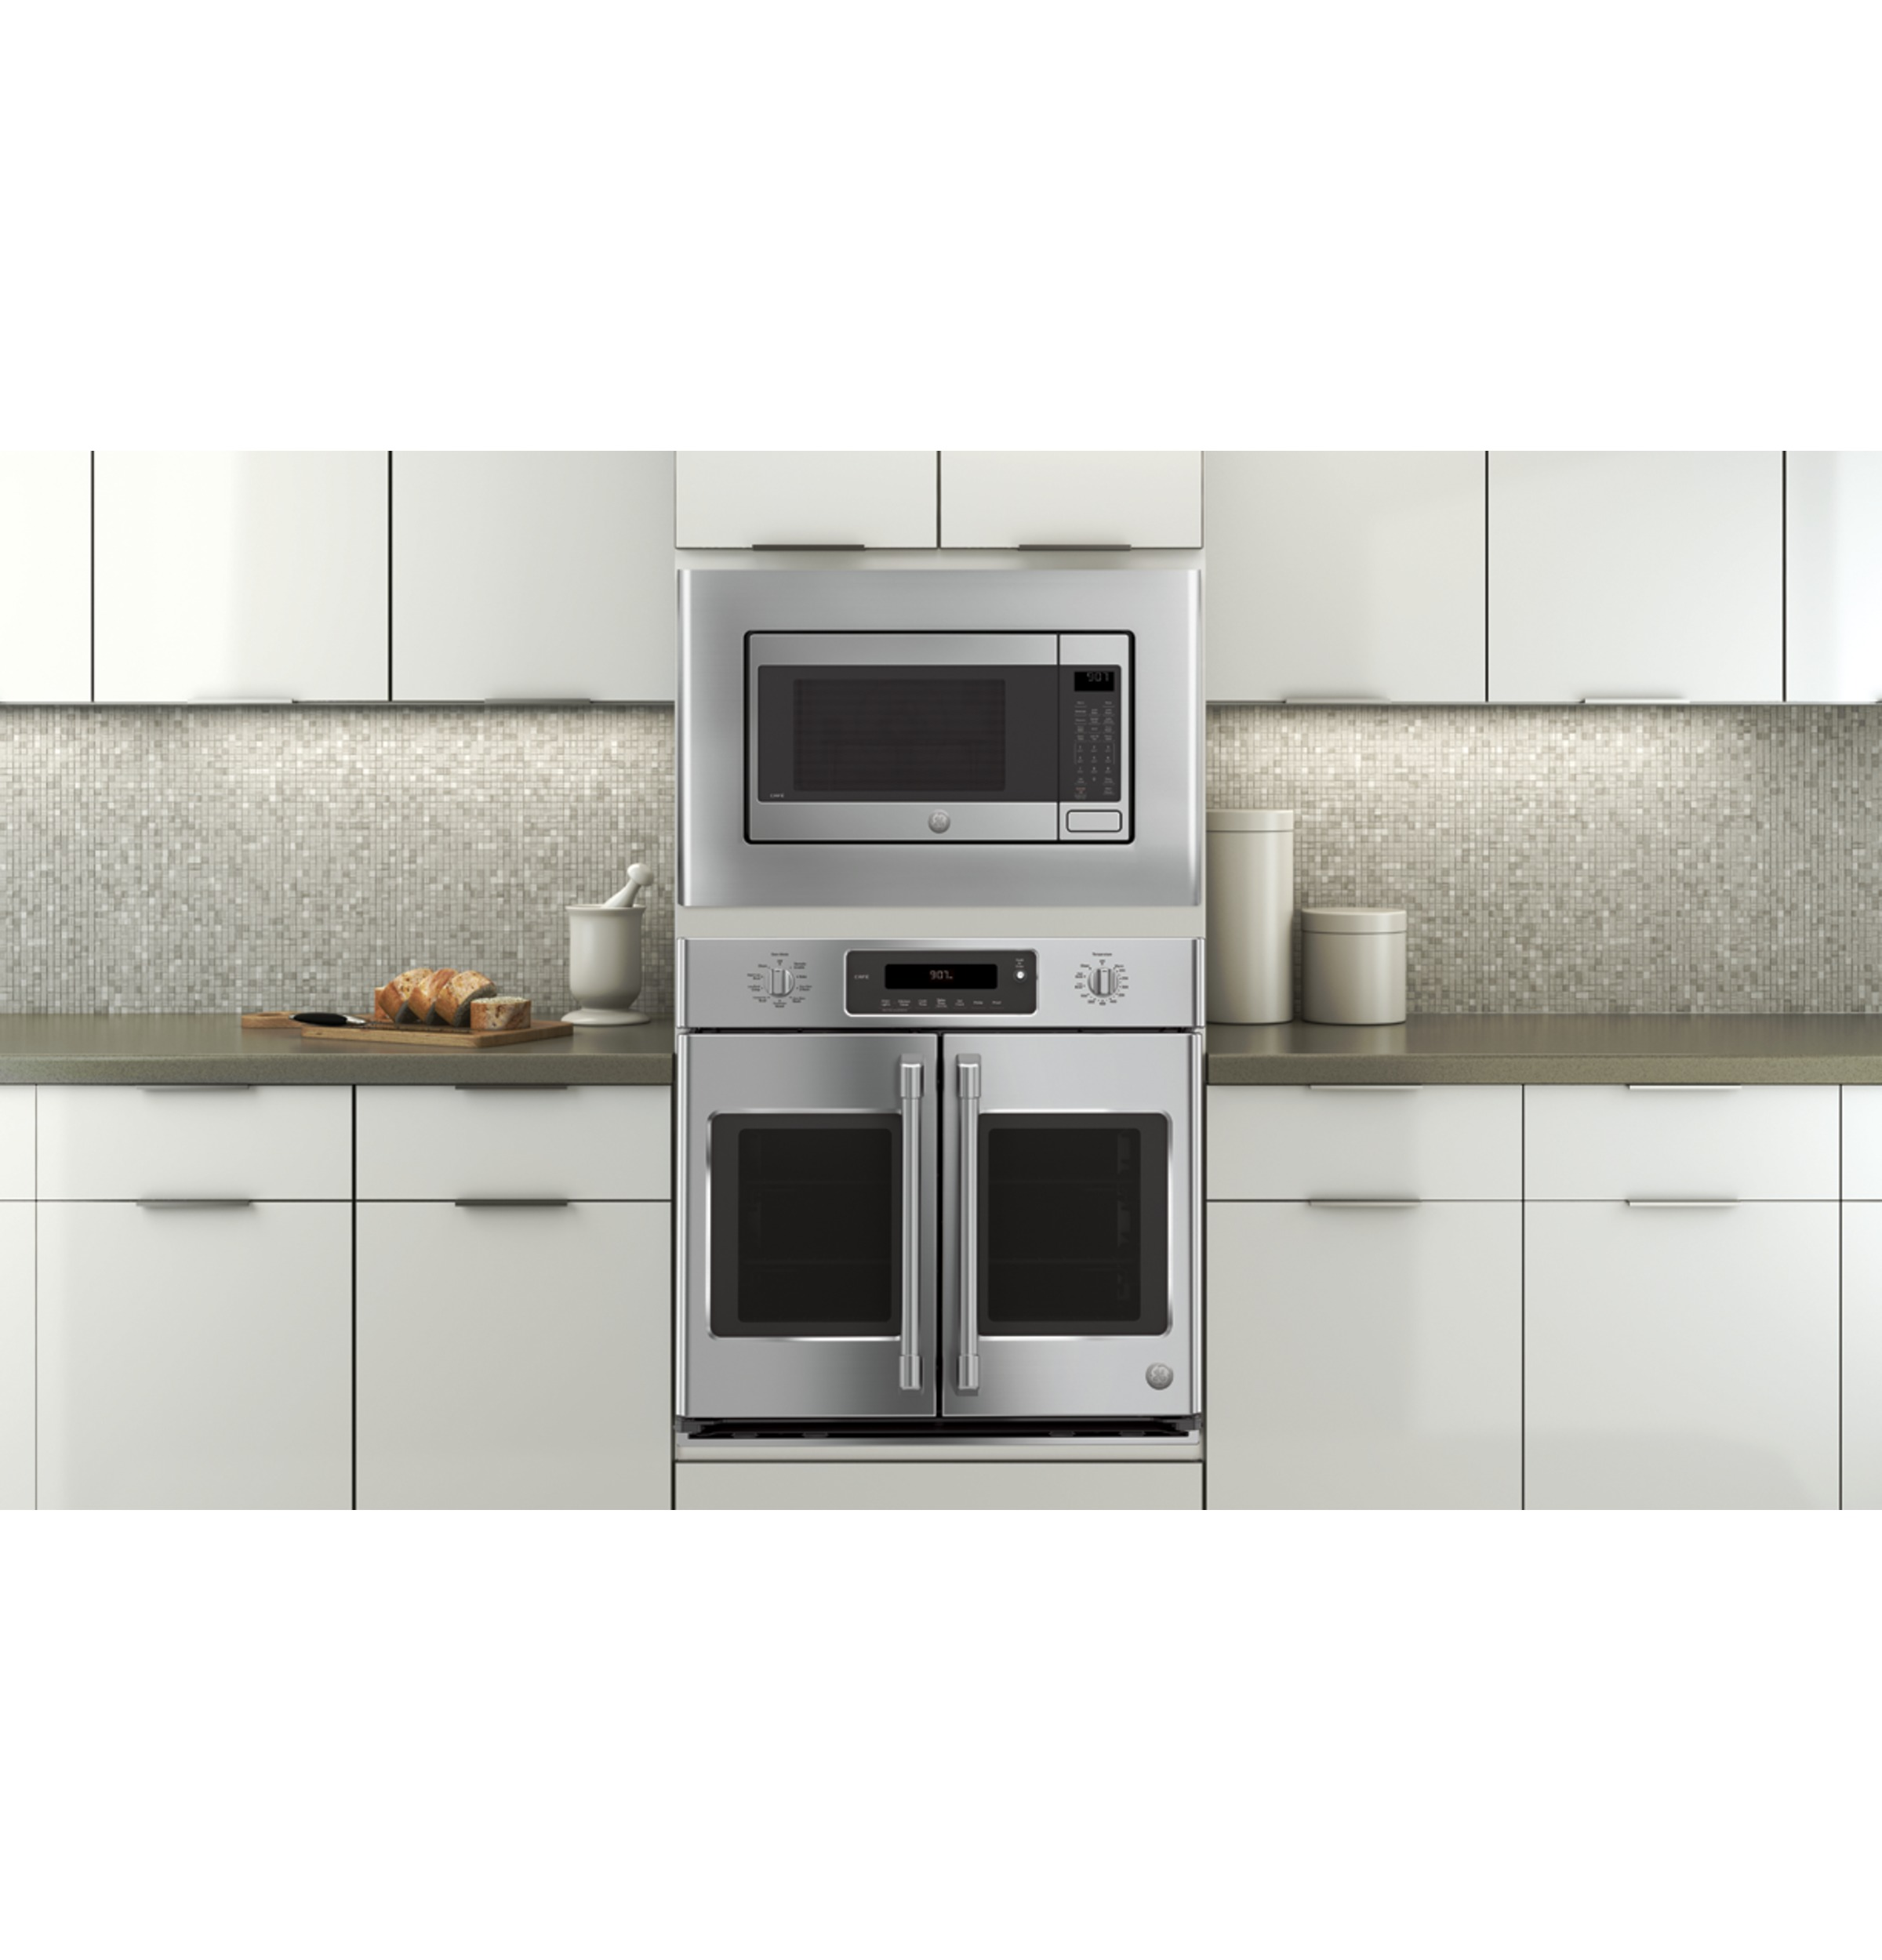 JX9153SJSS | Microwave Optional 30"|2400|2500|?|9ec4d0bbbf48bbd98345ef9c769b1407|False|UNLIKELY|0.302167683839798